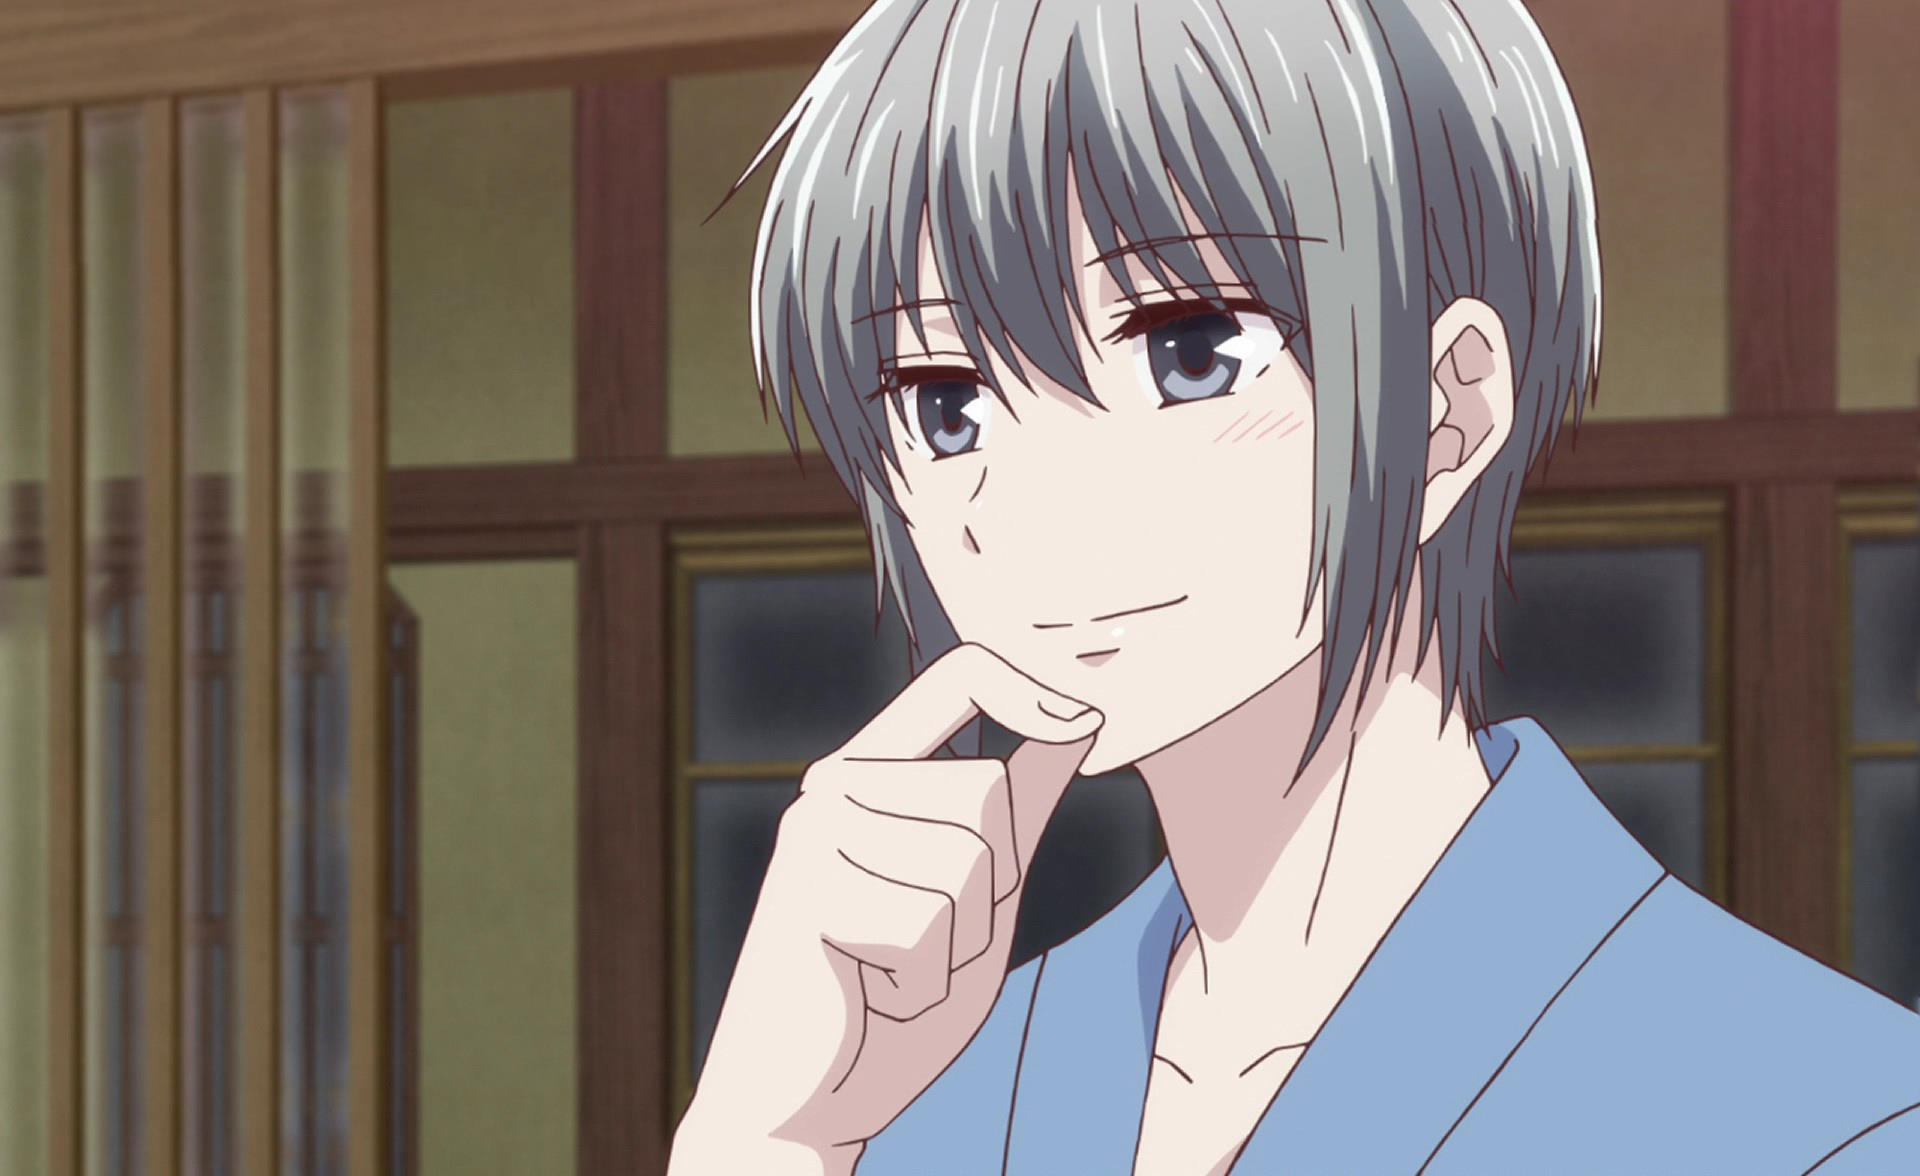 f47e70f28158_[Erai-raws] Fruits Basket (2019) - 11 [1080p].mkv_snapshot_20.24_[2019.06.16_03.33.15]_stitch